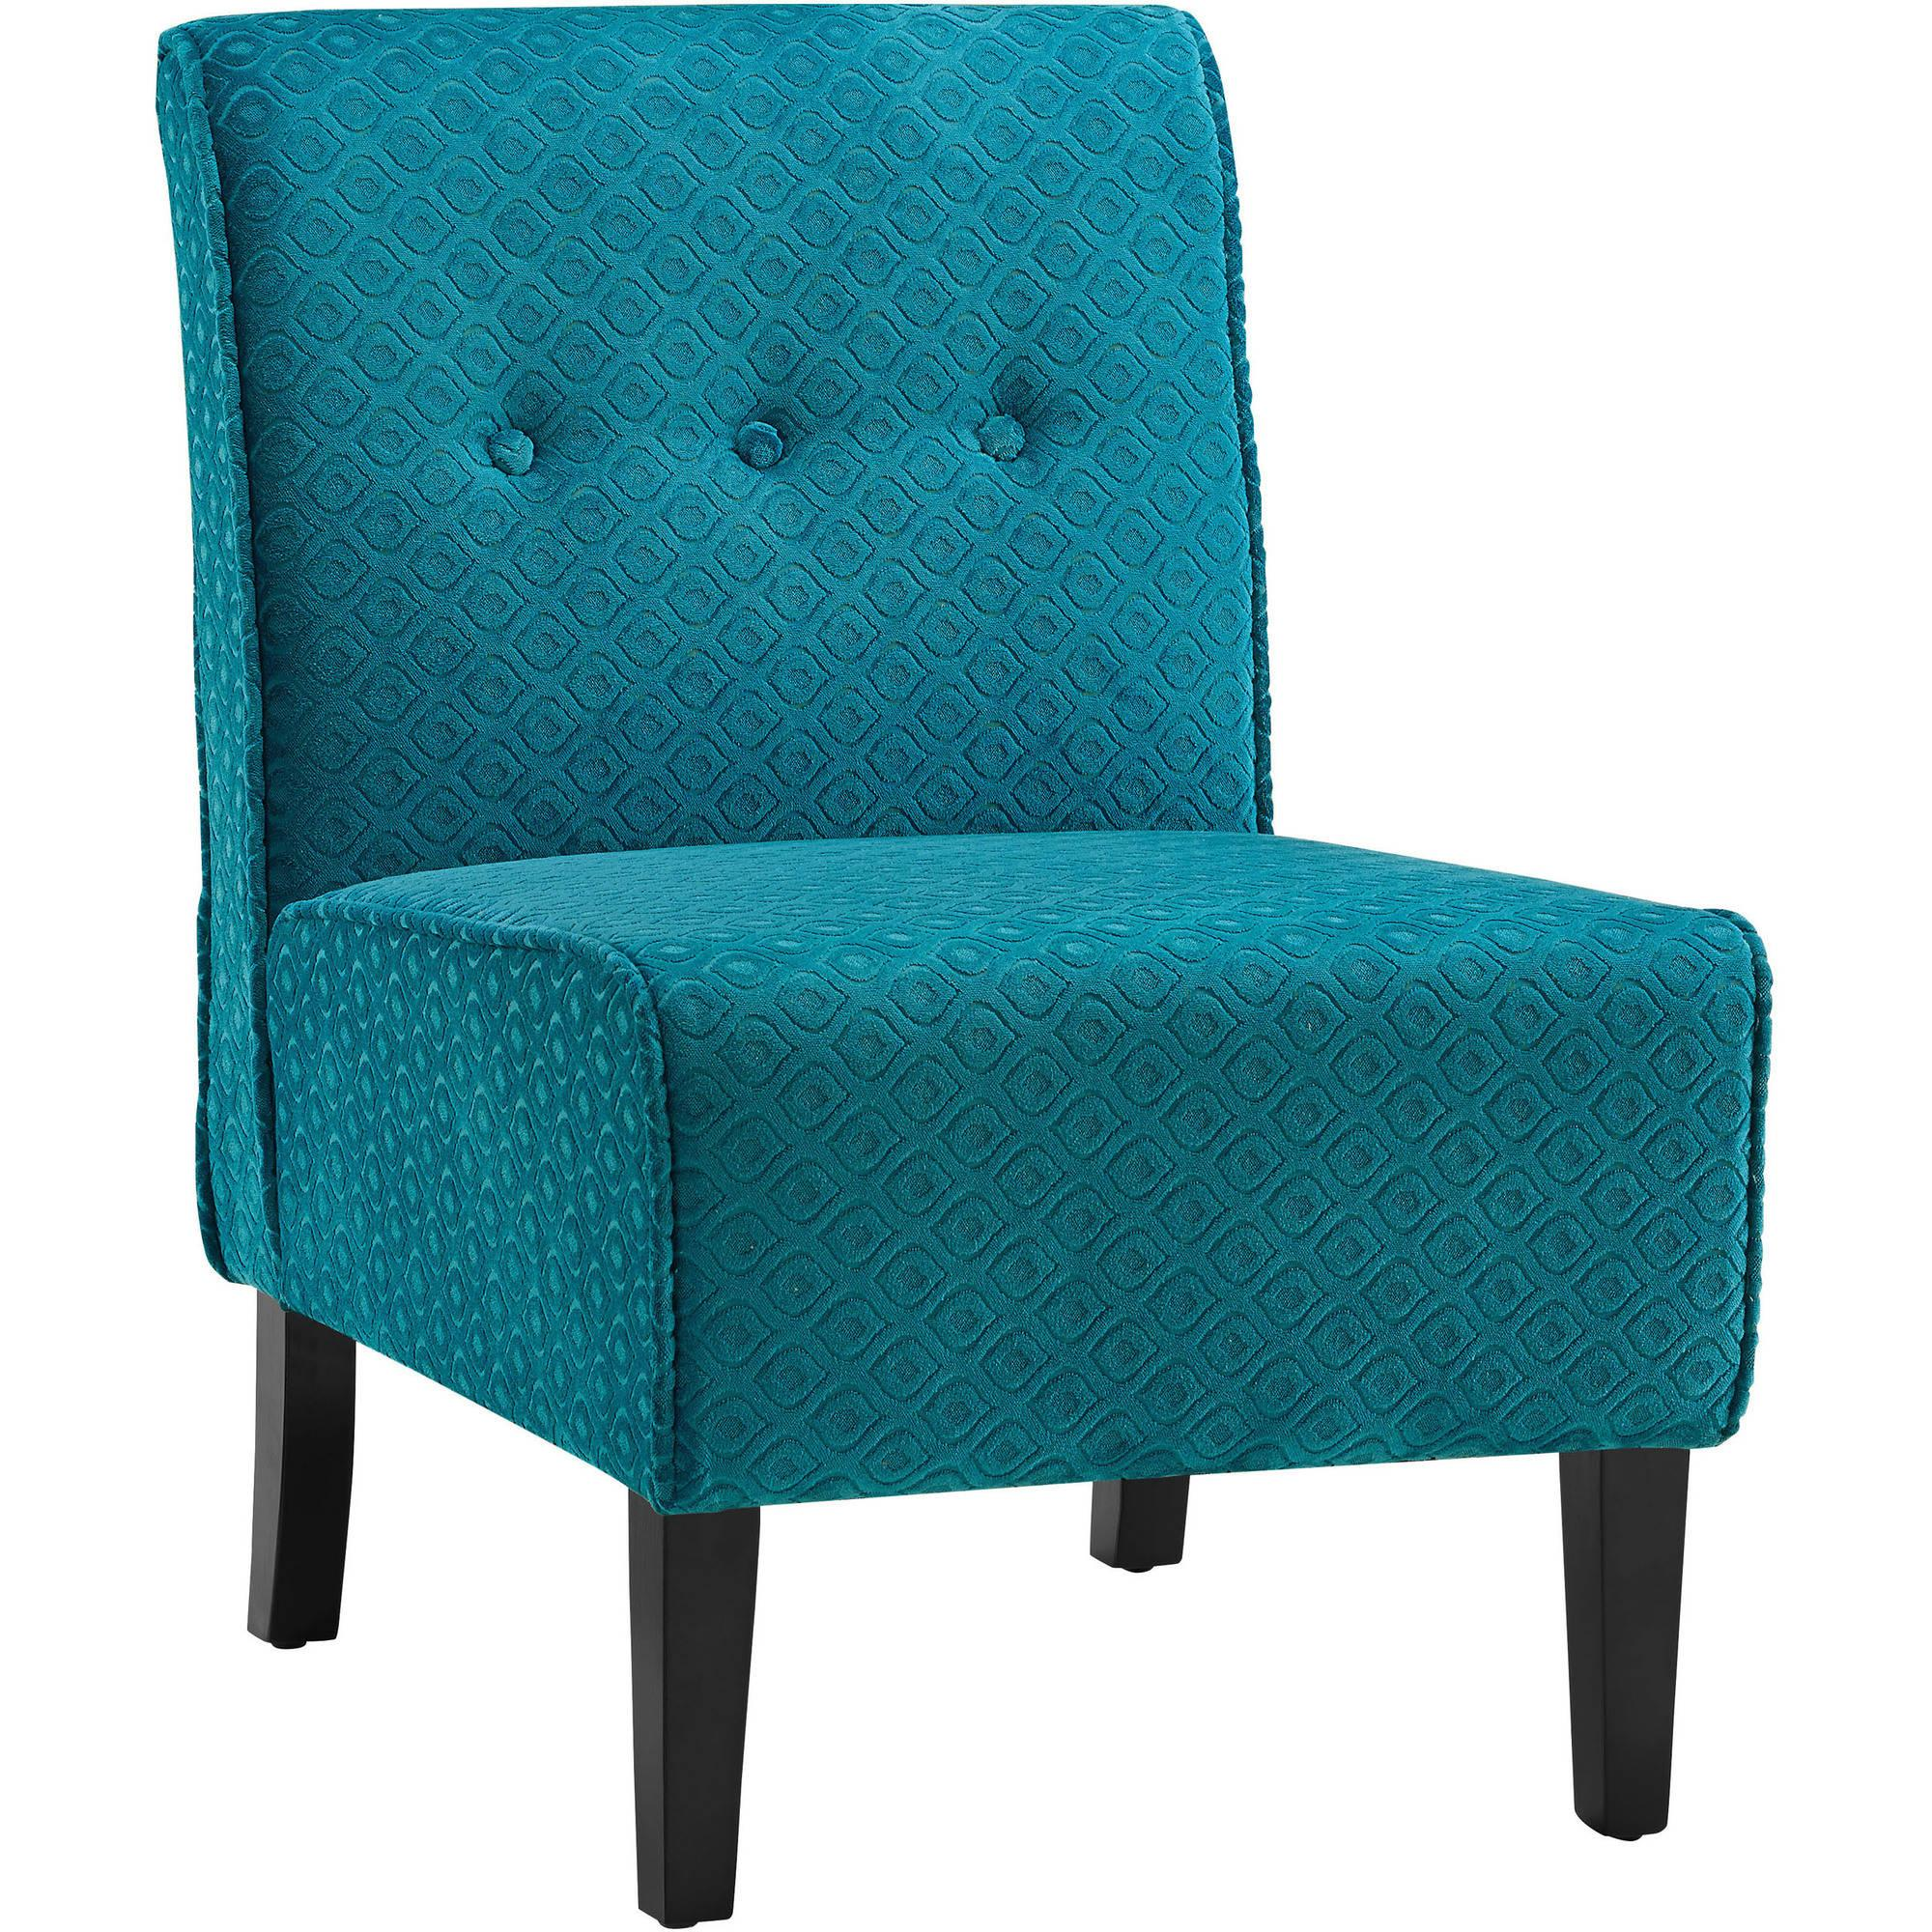 Turquoise Accent Chair: Coco Teal Blue Accent Chair